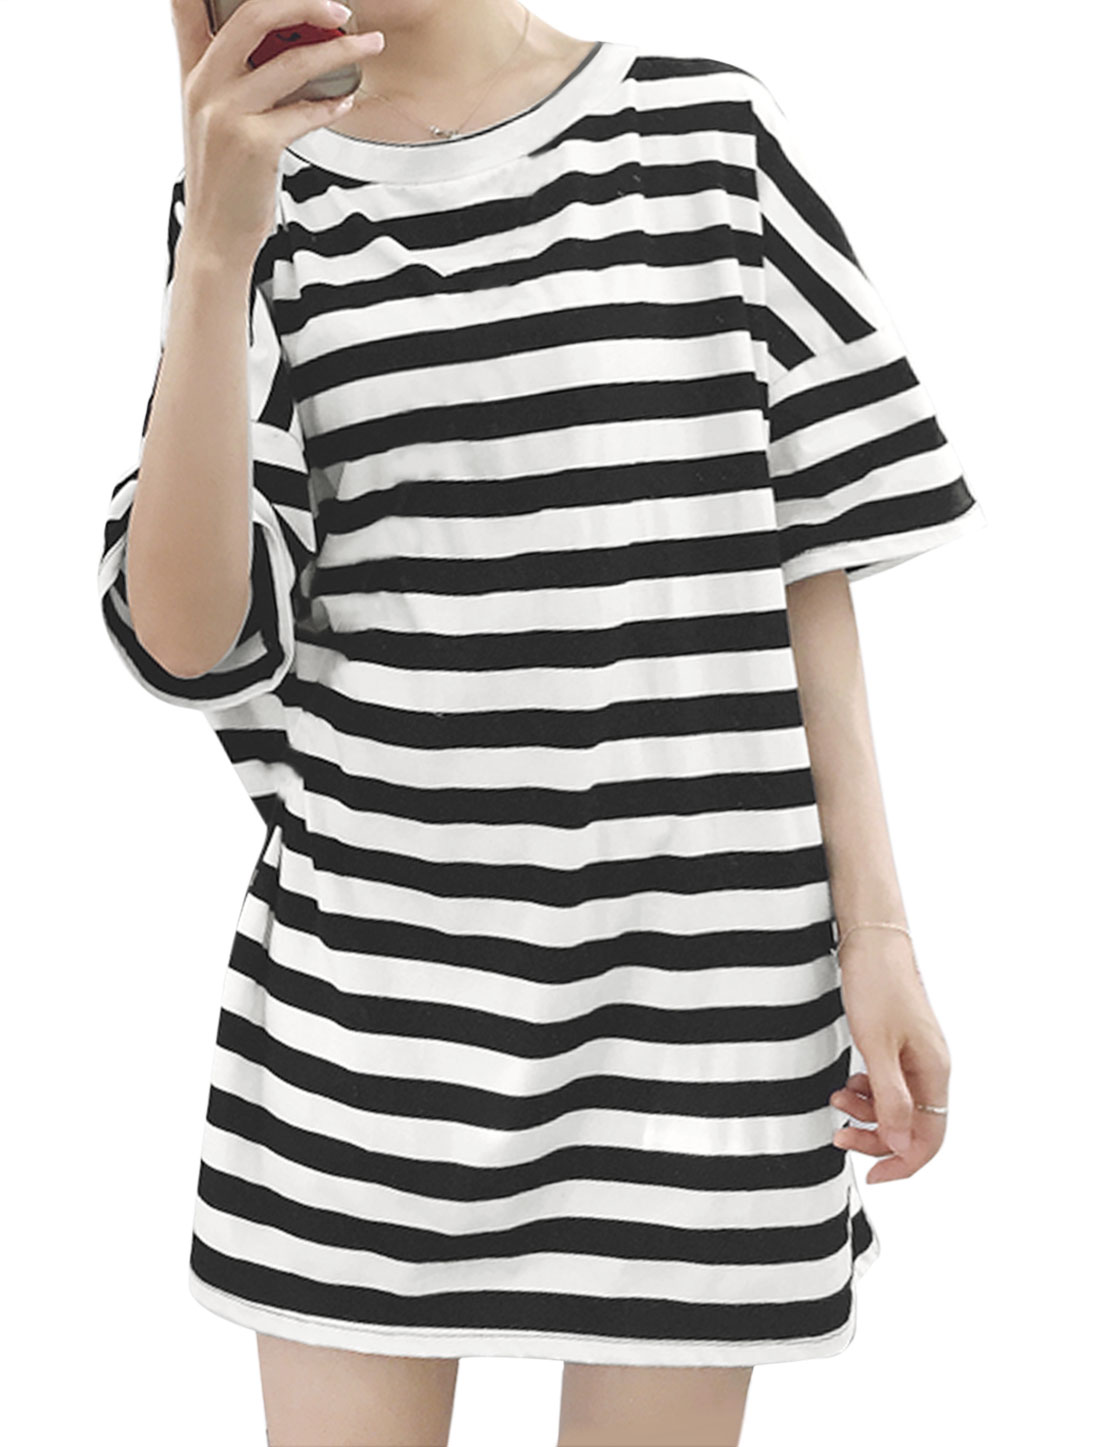 Women Drop Shoulder 1/2 Batwing Sleeves Stripes Loose Tunic Dress Black S